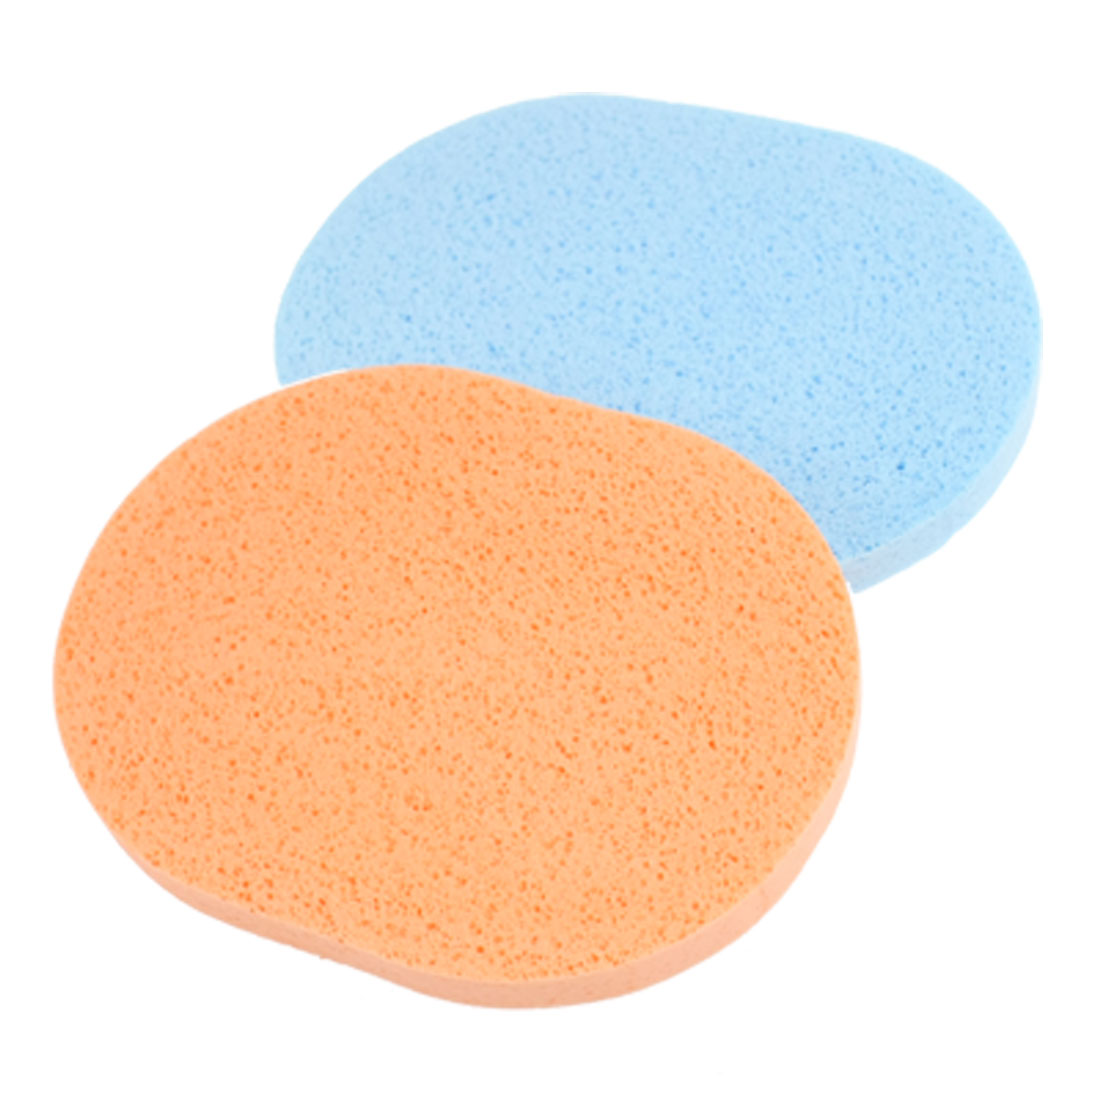 2 Pcs Soft Face Washing Cleansing Sponges Pads Puff for Ladies